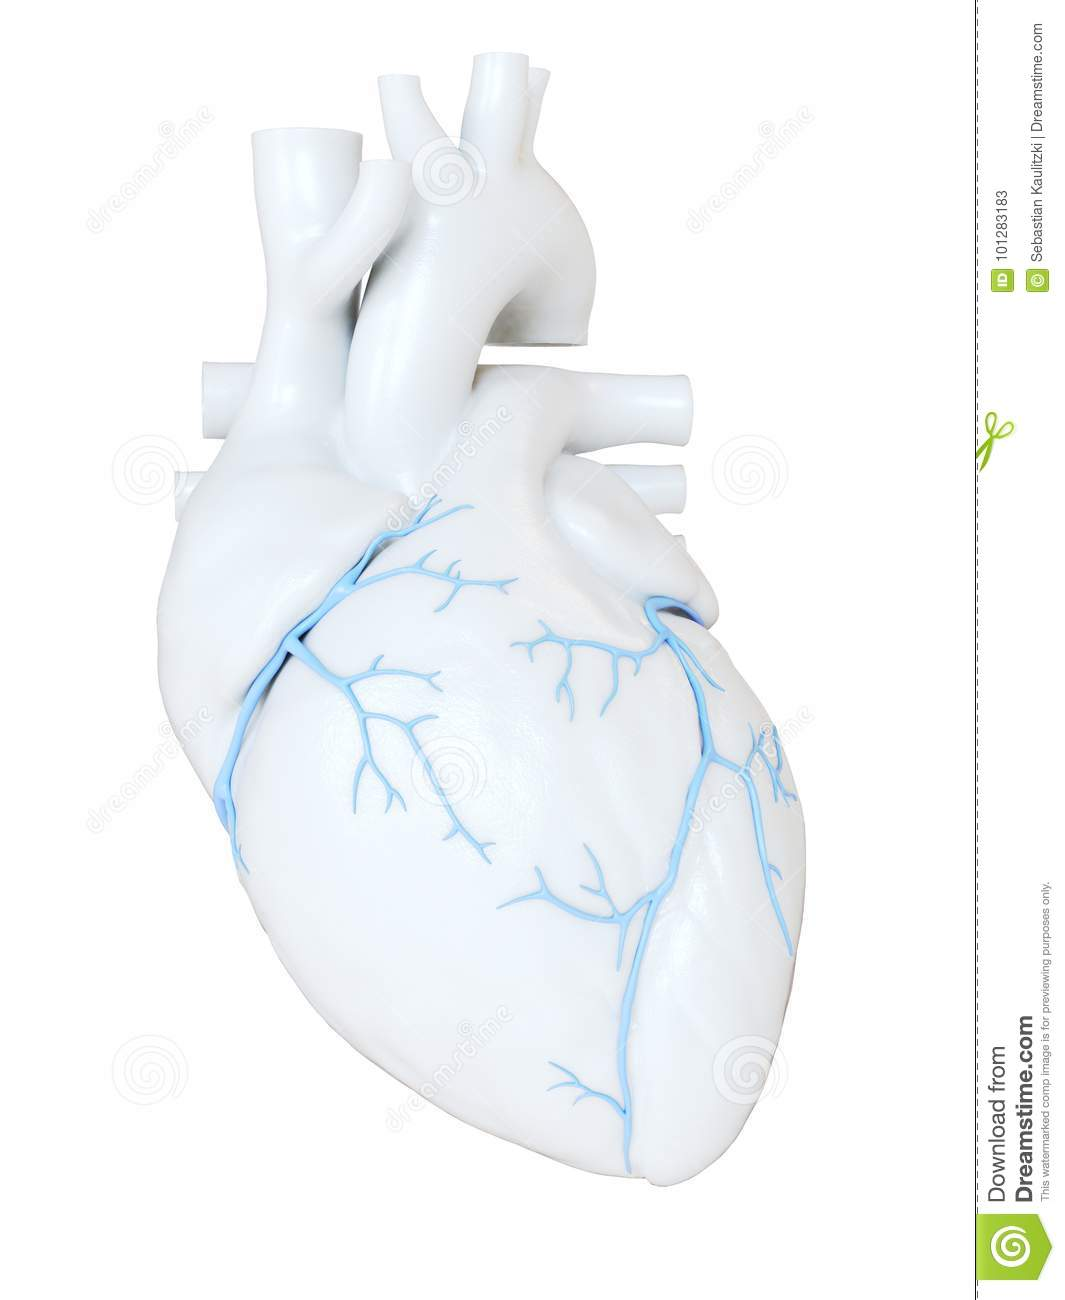 The coronary veins stock illustration. Illustration of cardiology ...